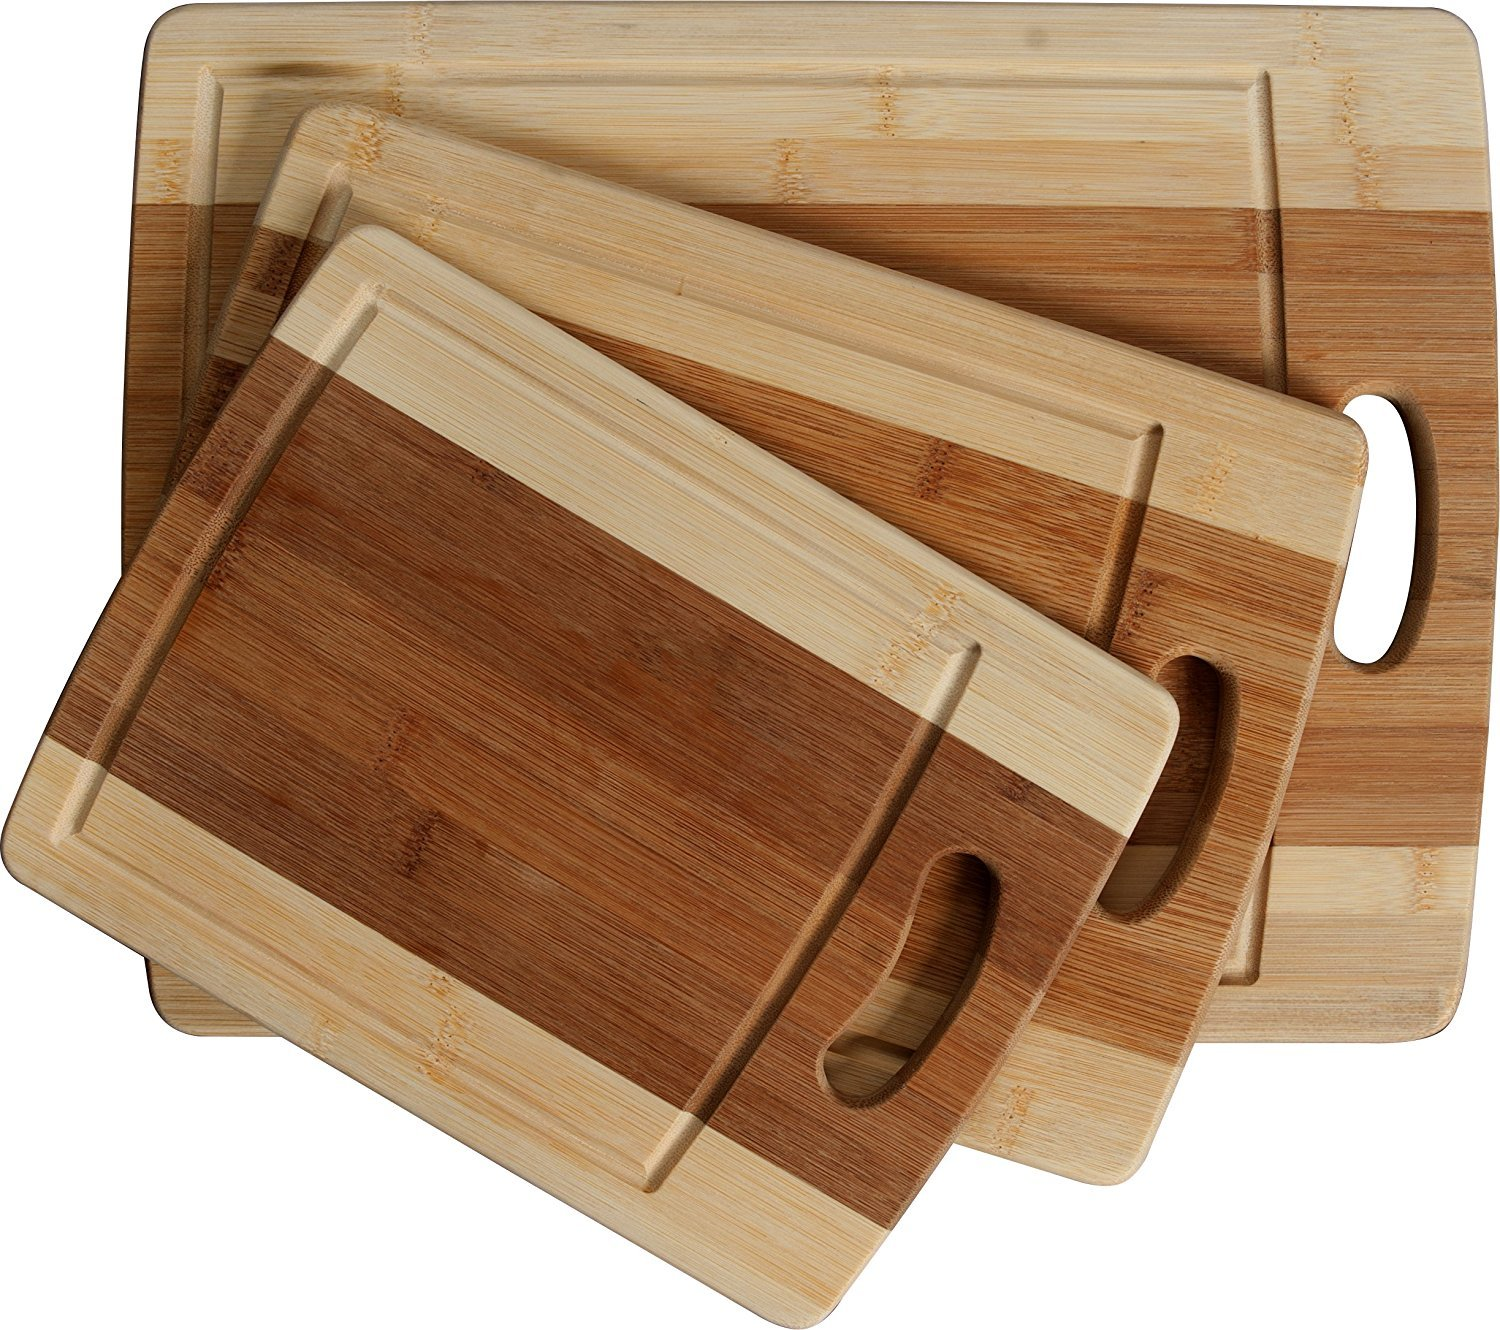 CC Boards 3-Piece Bamboo Cutting Board Set: Wooden butcher block boards with juice groove and handle; Slice veggies, bread or meat; great for serving cheese and crackers Lake House Products LHP004